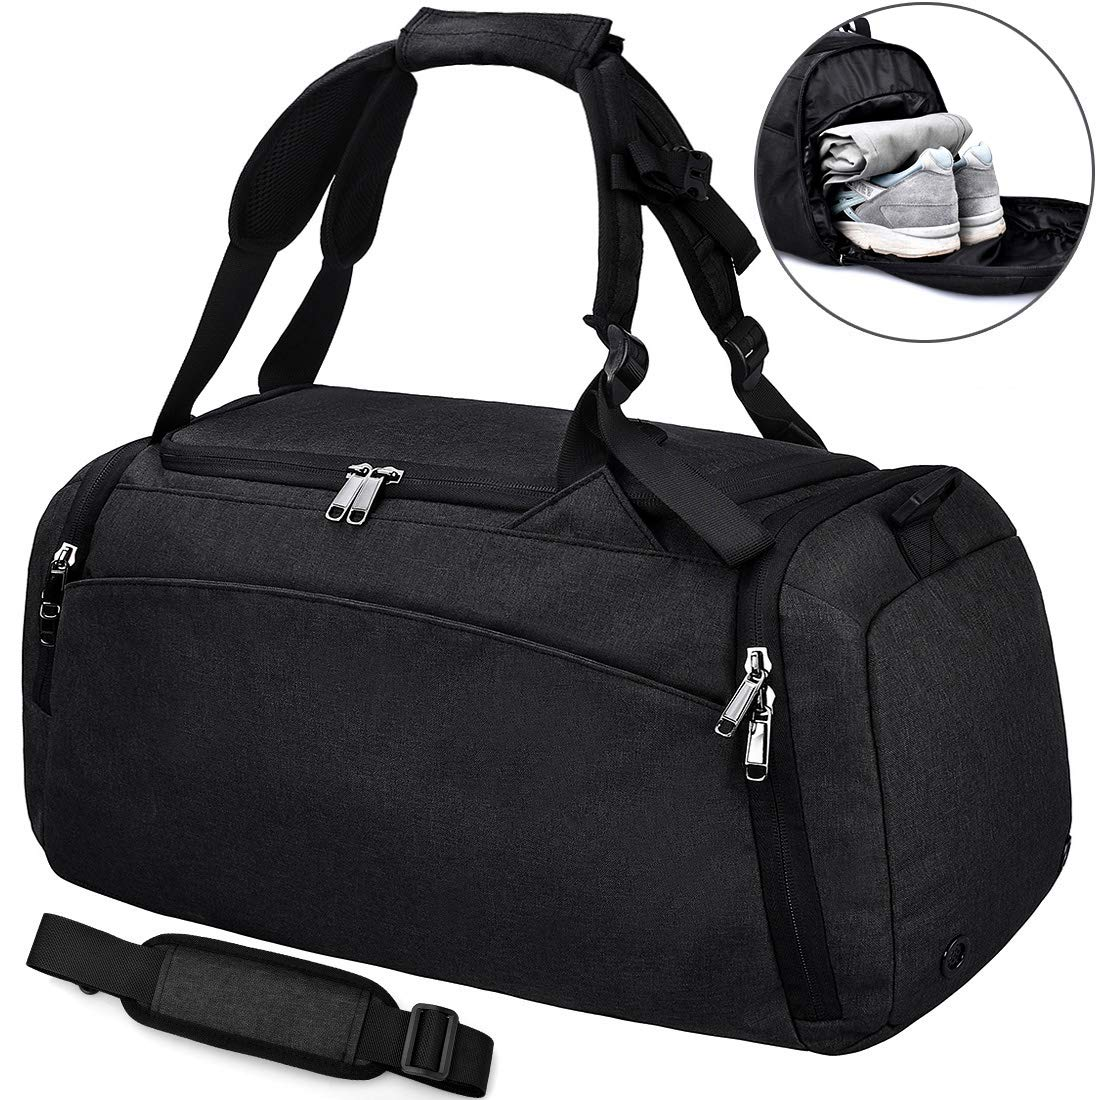 NEWHEY Sports Gym Duffel Bag with Shoe Compartment Waterproof Travel  Holdall Large Sports Bag for Men Women 40 L 4887220265